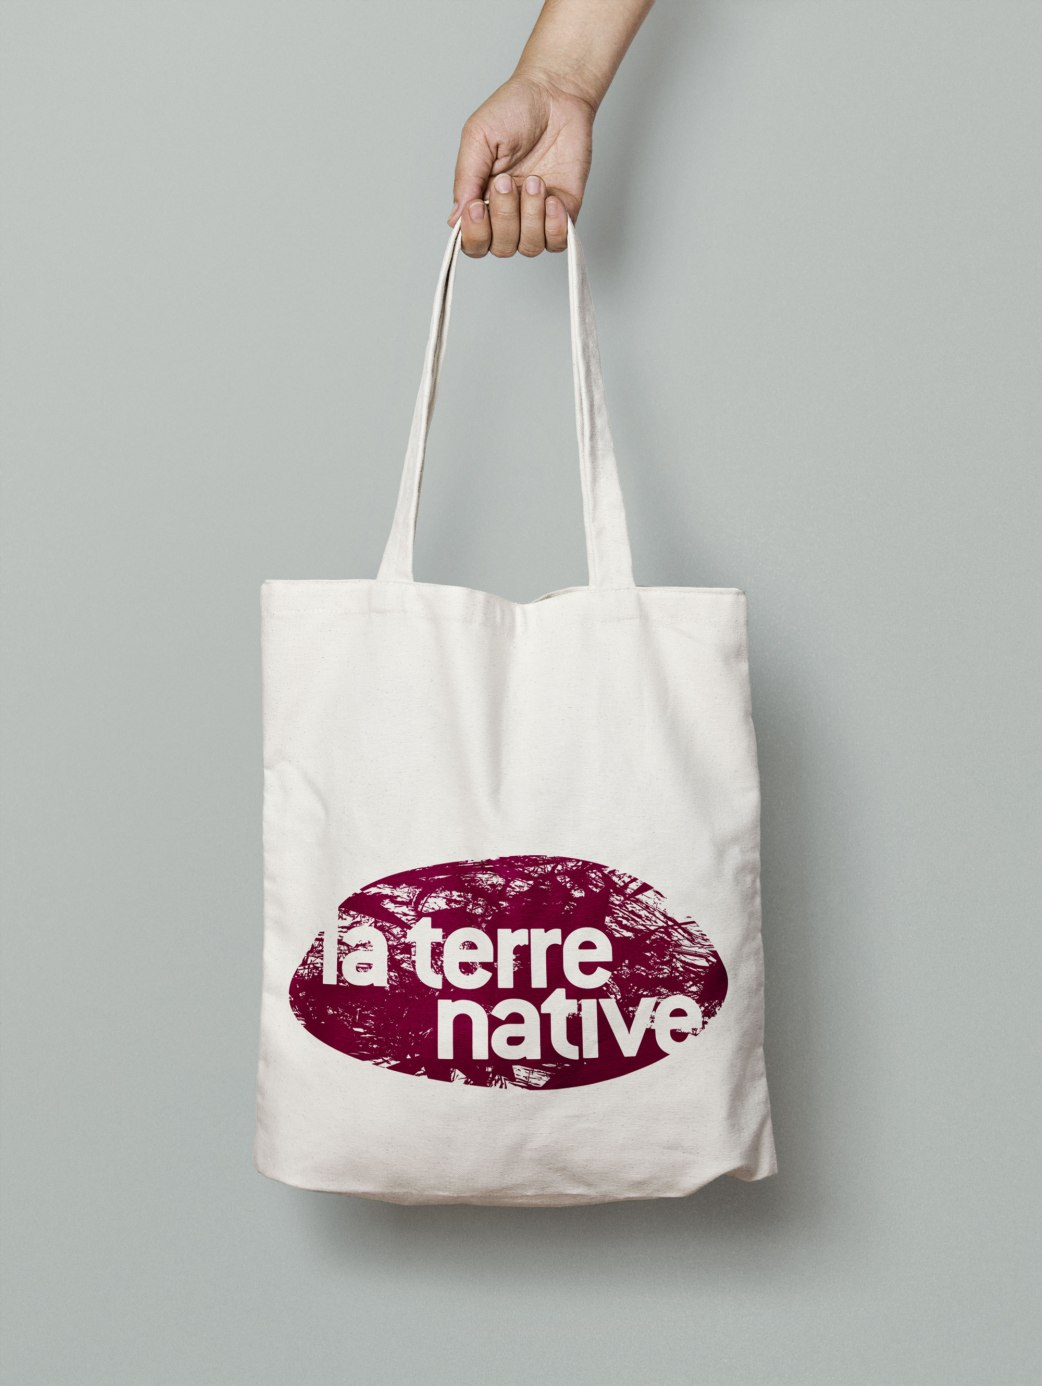 Terre Native la terre native – lucie meier – graphic design